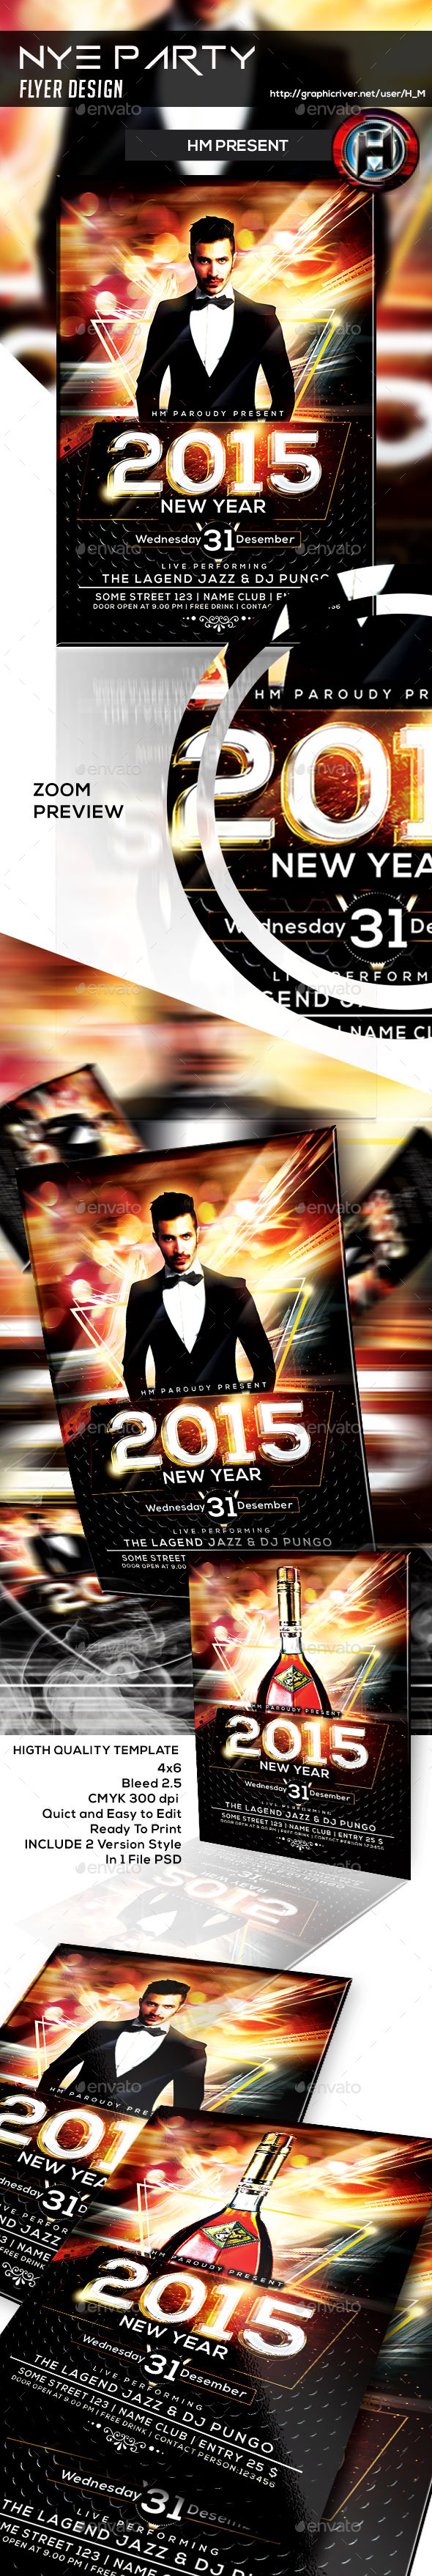 NYE Party Flyer Design - Events Flyers